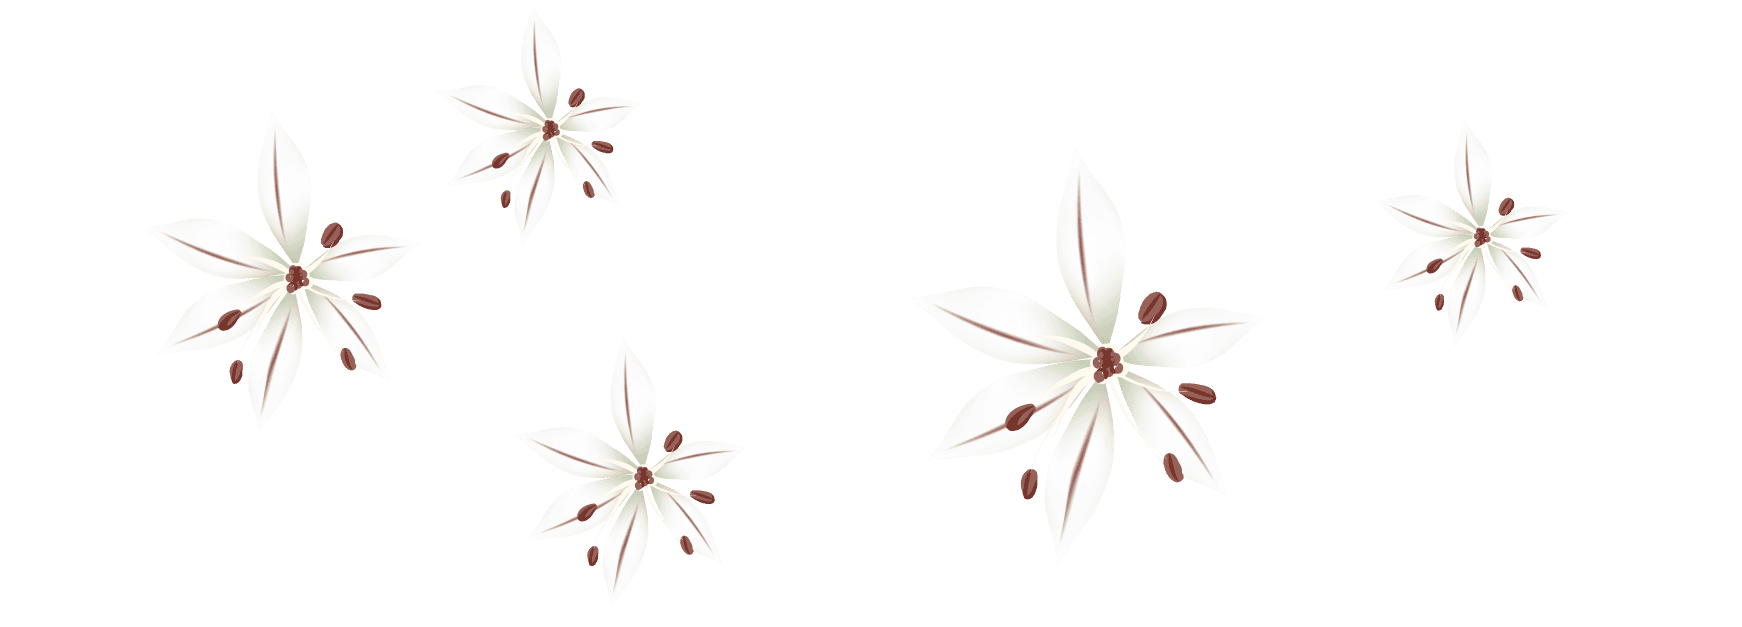 white and brown flowers